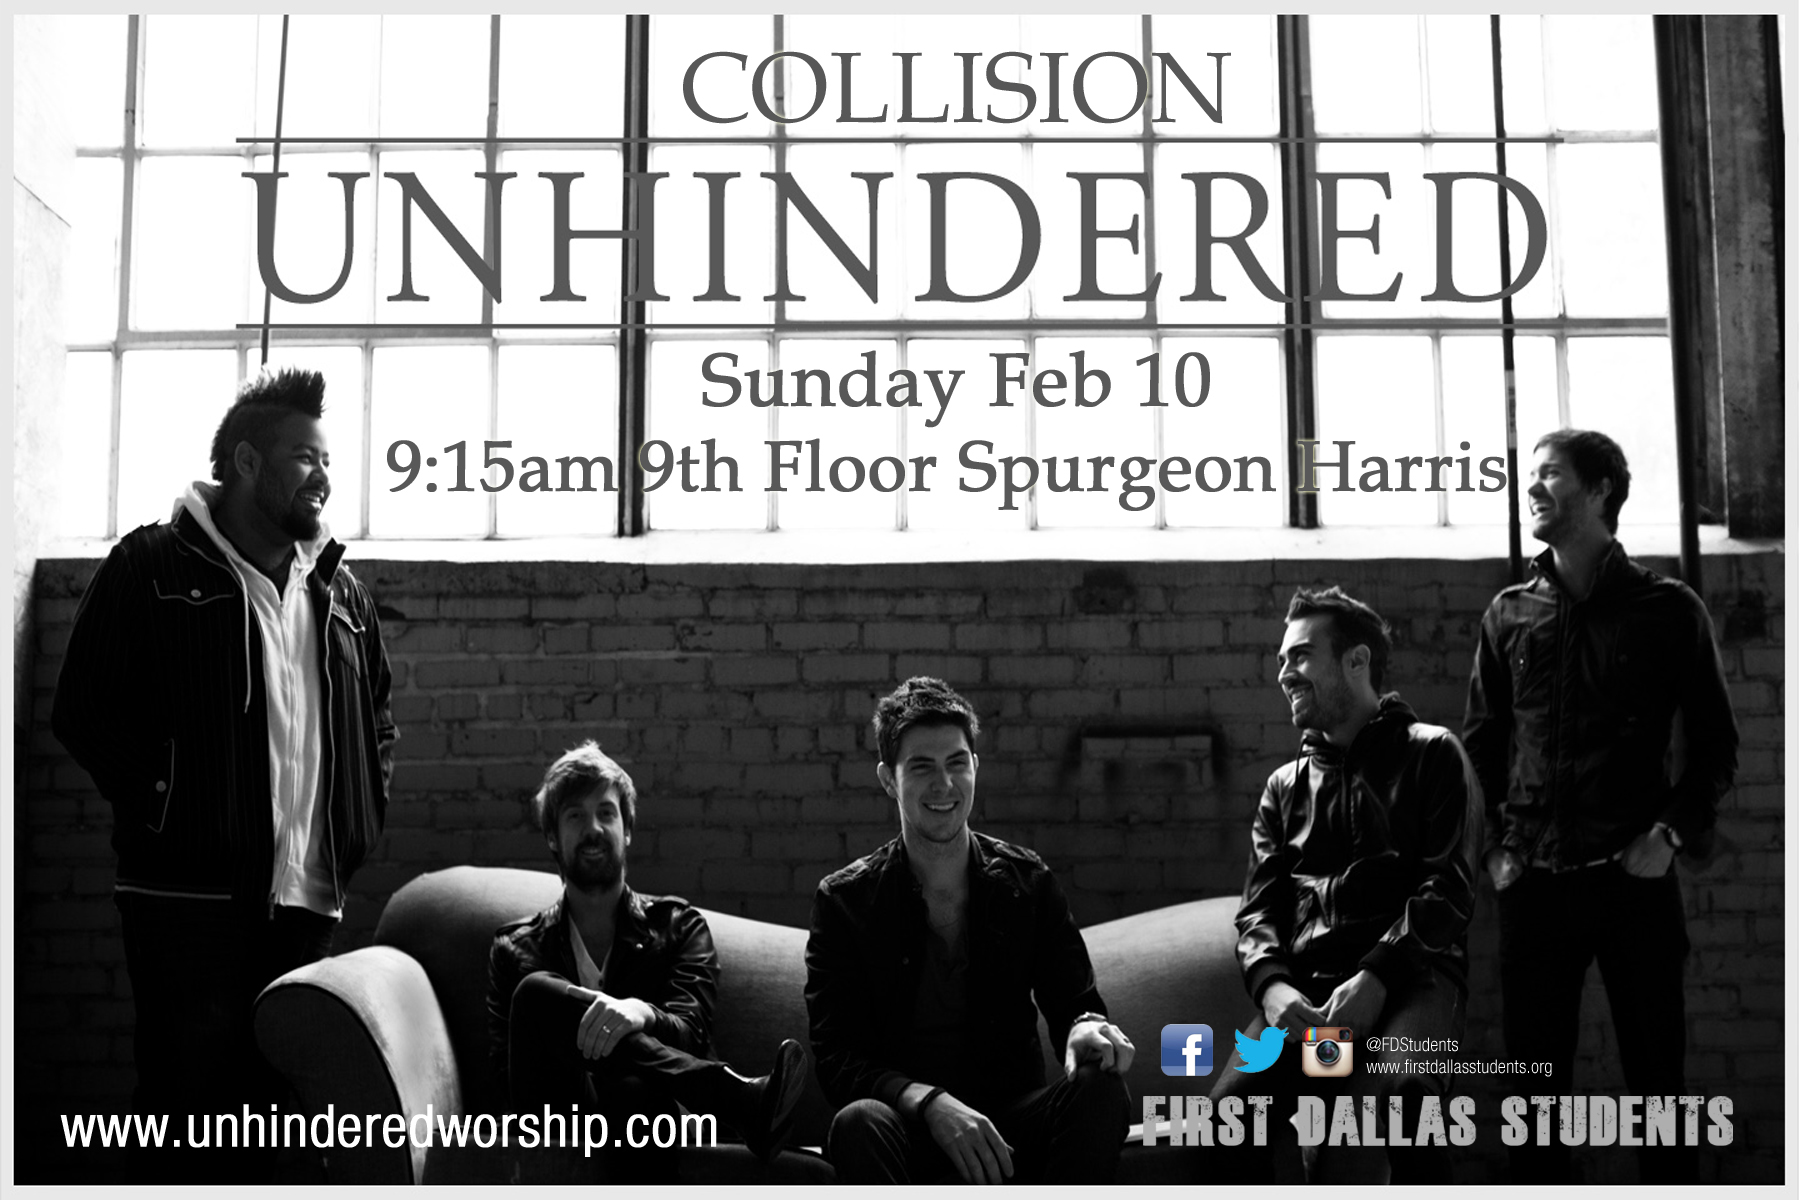 Students Collision Jan 2013 - Unhindered